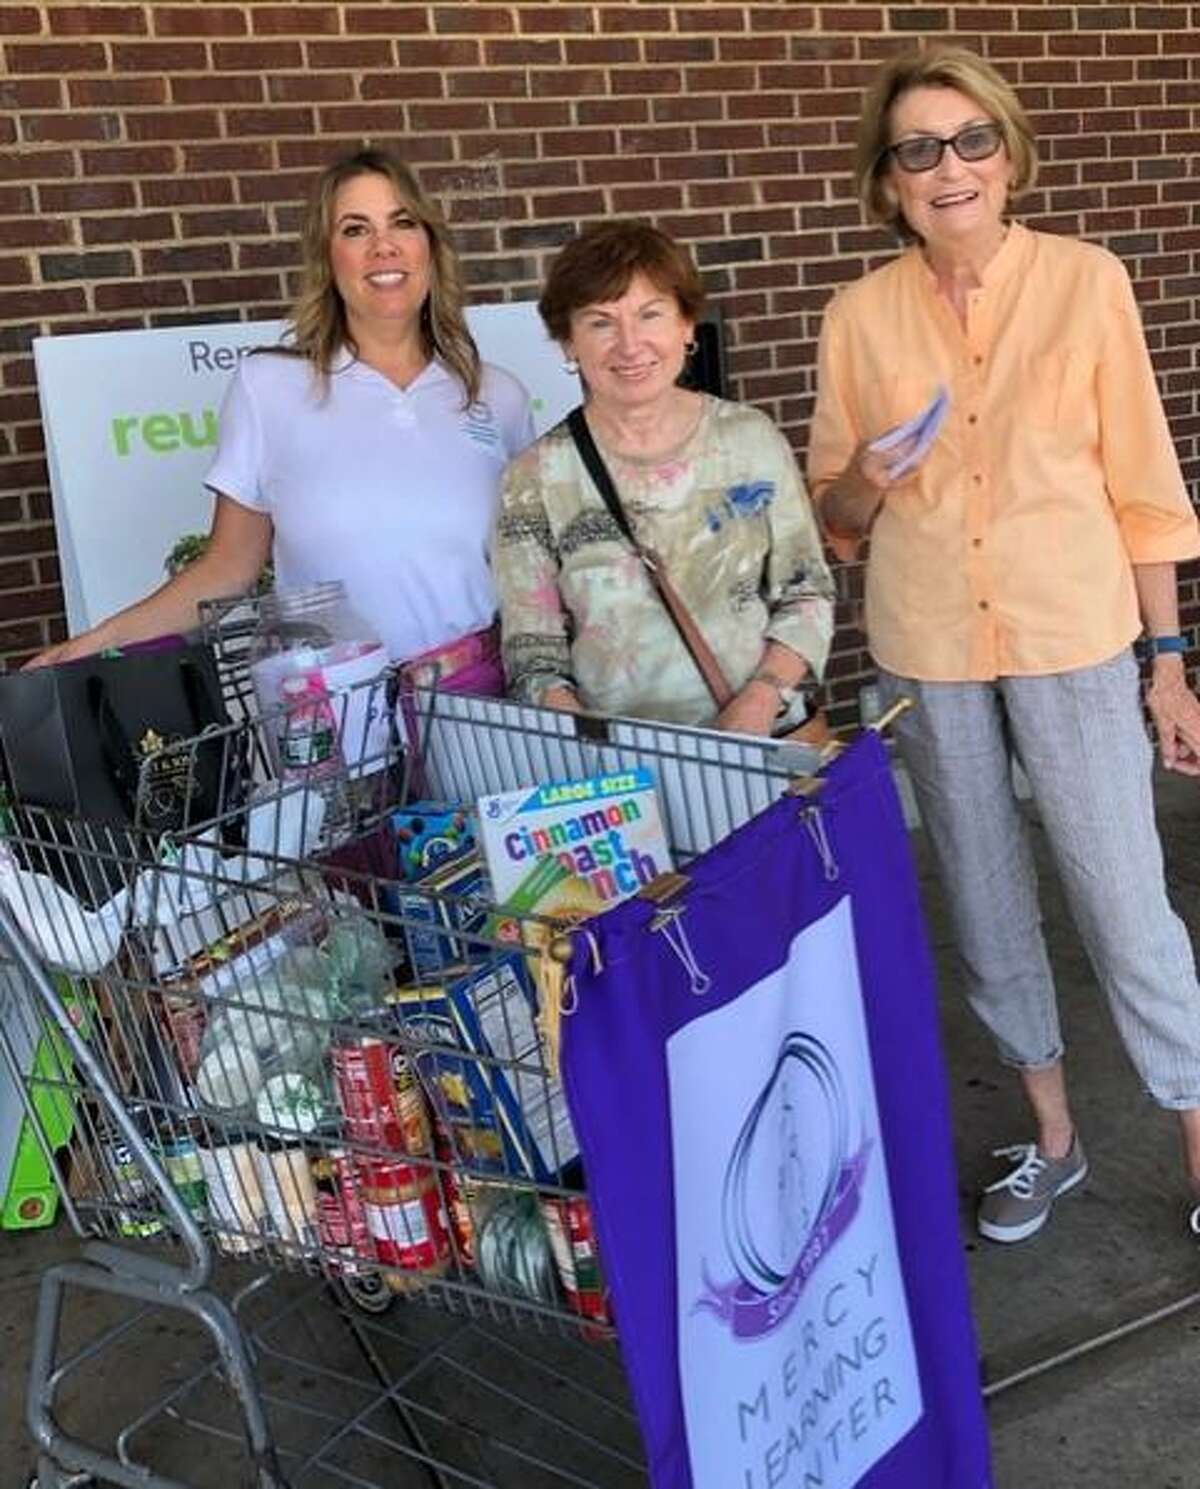 On Saturday, Sept. 21, Trumbull Community Women conducted a food drive at the Stop and Shop on Main Street in Bridgeport. Proceeds and food collected went to the Bridgeport Rescue Mission, which is one of the many service organizations being supported by the women's group this year. The trio is Julie Howes, Anna Lozynlak and Sheila Hayes.